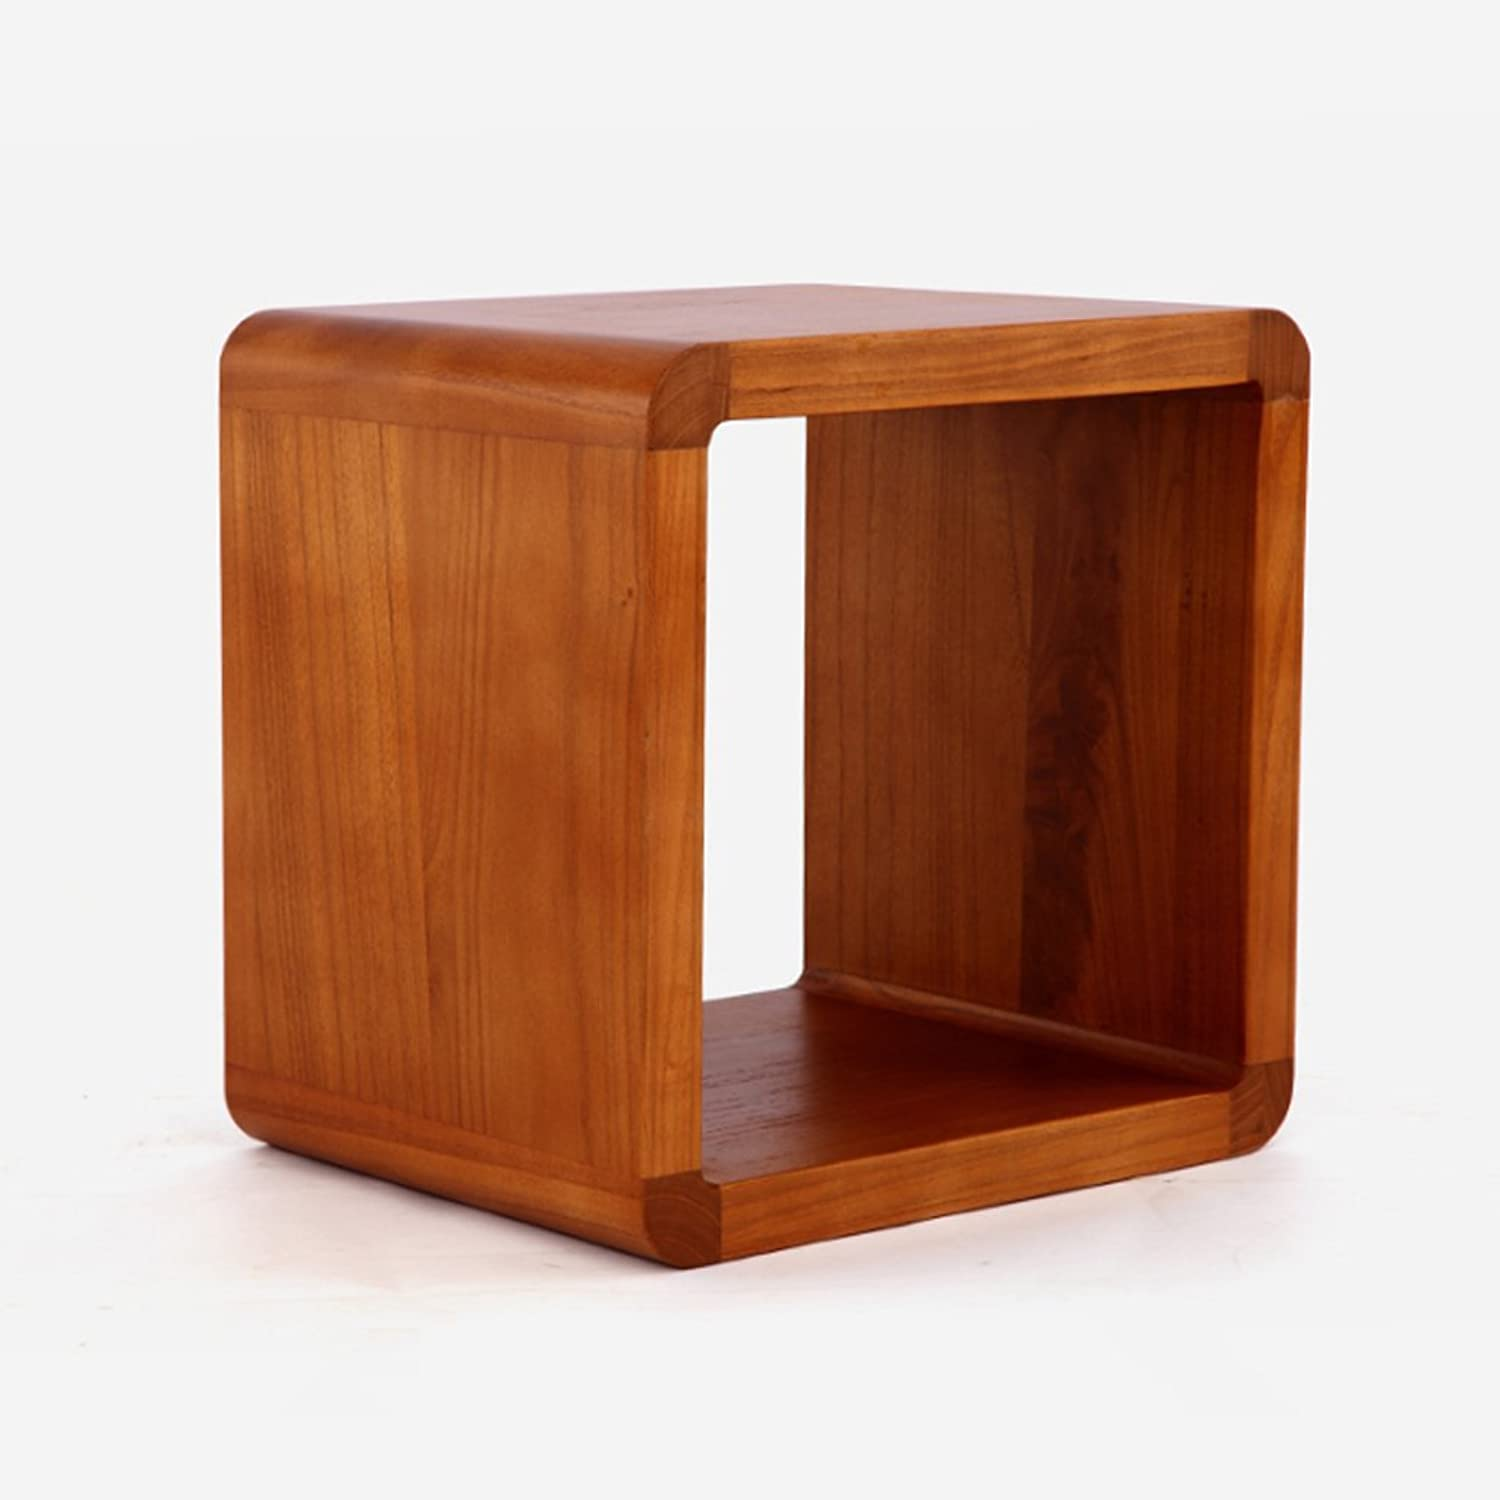 Japanese-Style Solid Wood Small Square Stool, shoes Bench Stool Coffee Table Stool Flower Stand Bench Stool Chair (color   L-40  32  40CM)